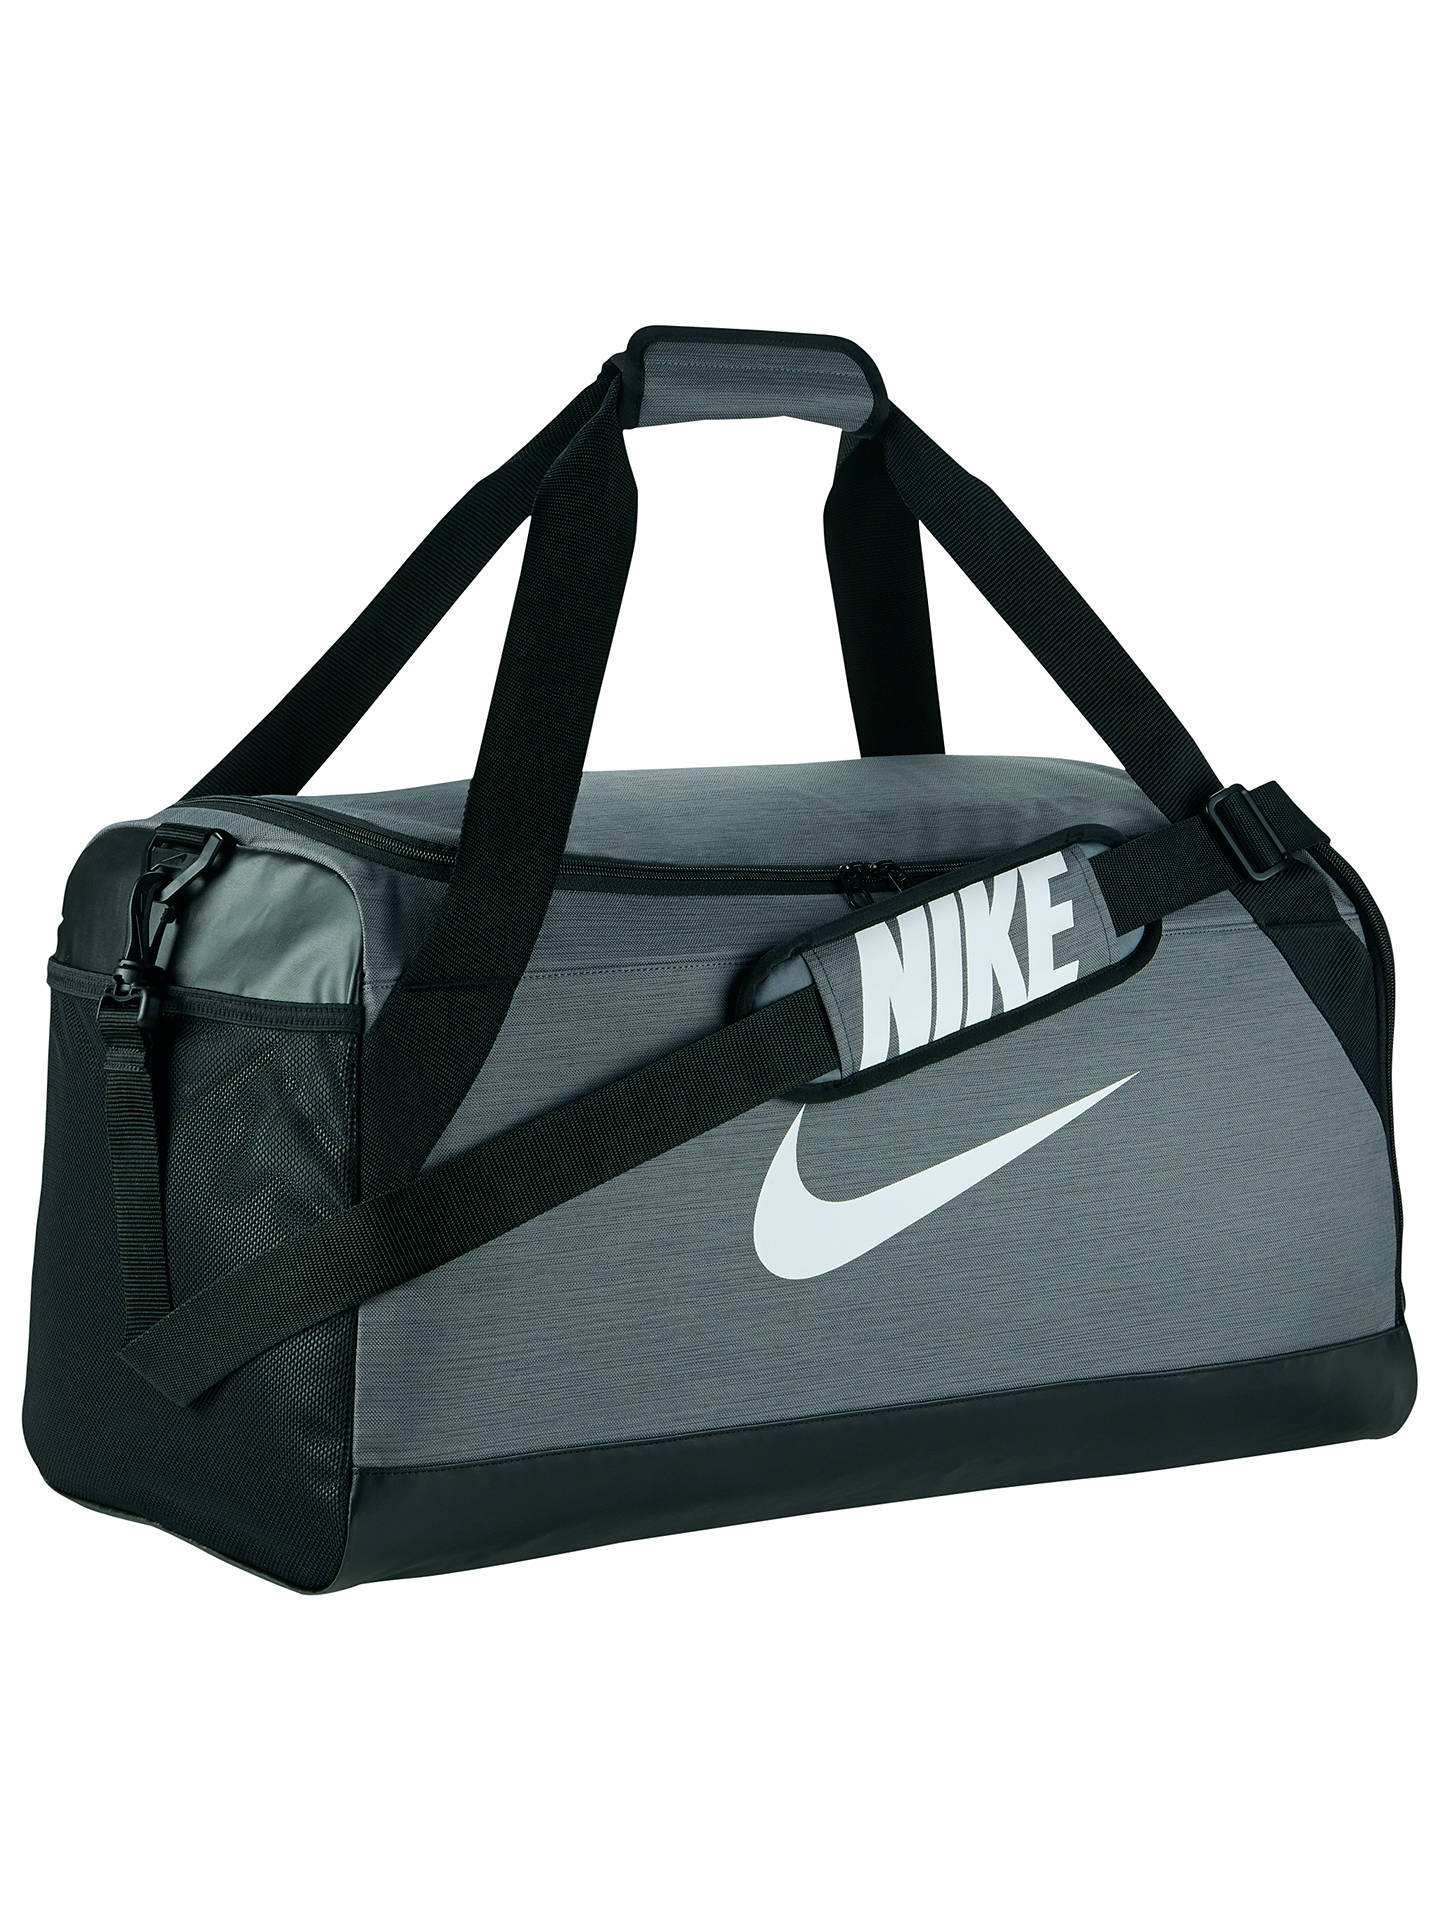 BuyNike Brasilia Medium Training Duffle Bag 2a0cee9463d71